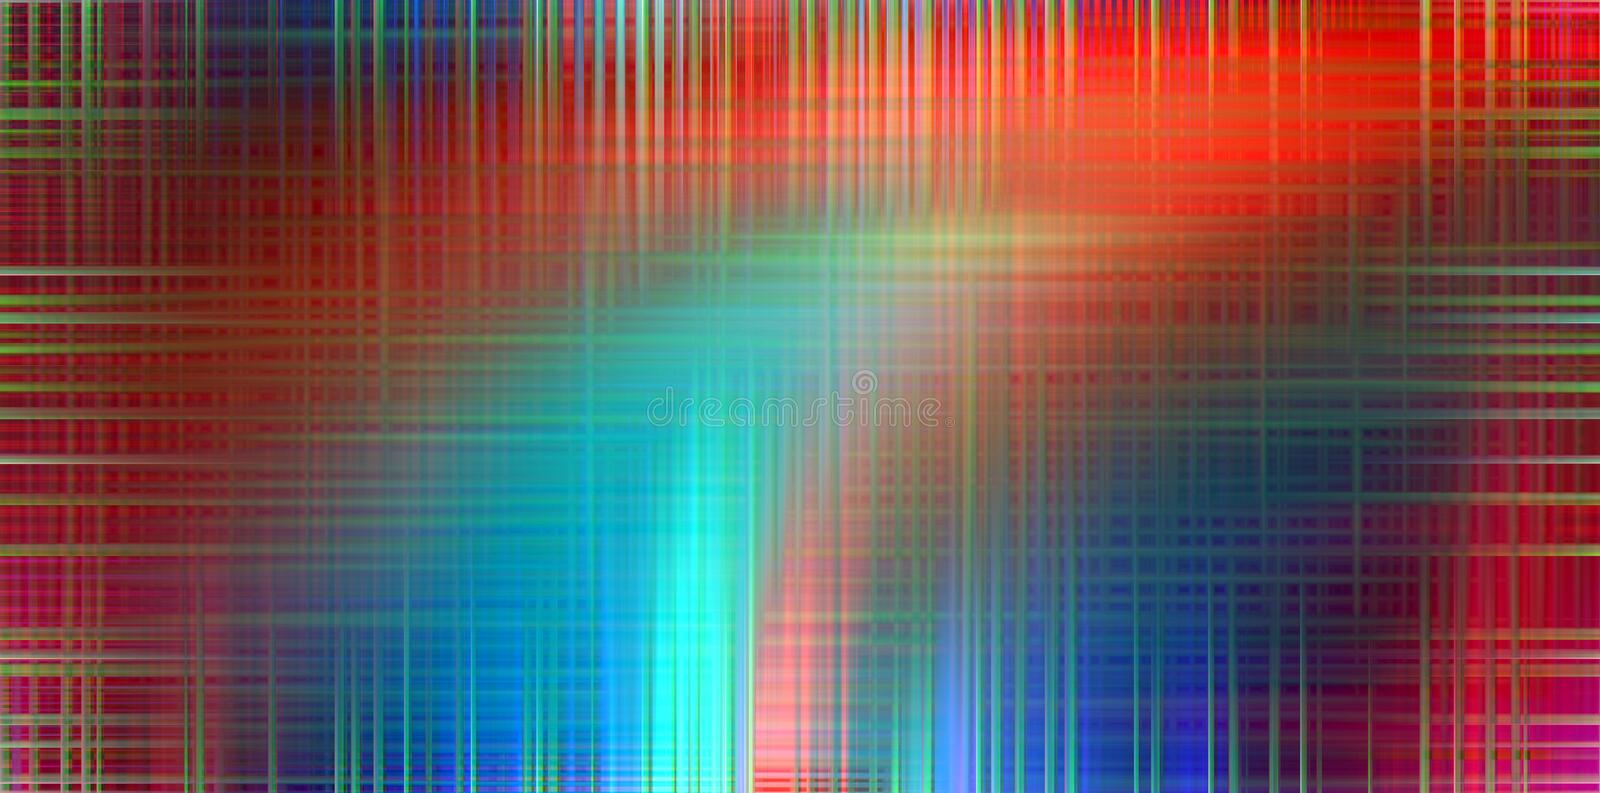 Abstract blue red lights background, colors, shades abstract graphics. Abstract background and texture. Abstract blue red lights, lines background, lights and stock illustration